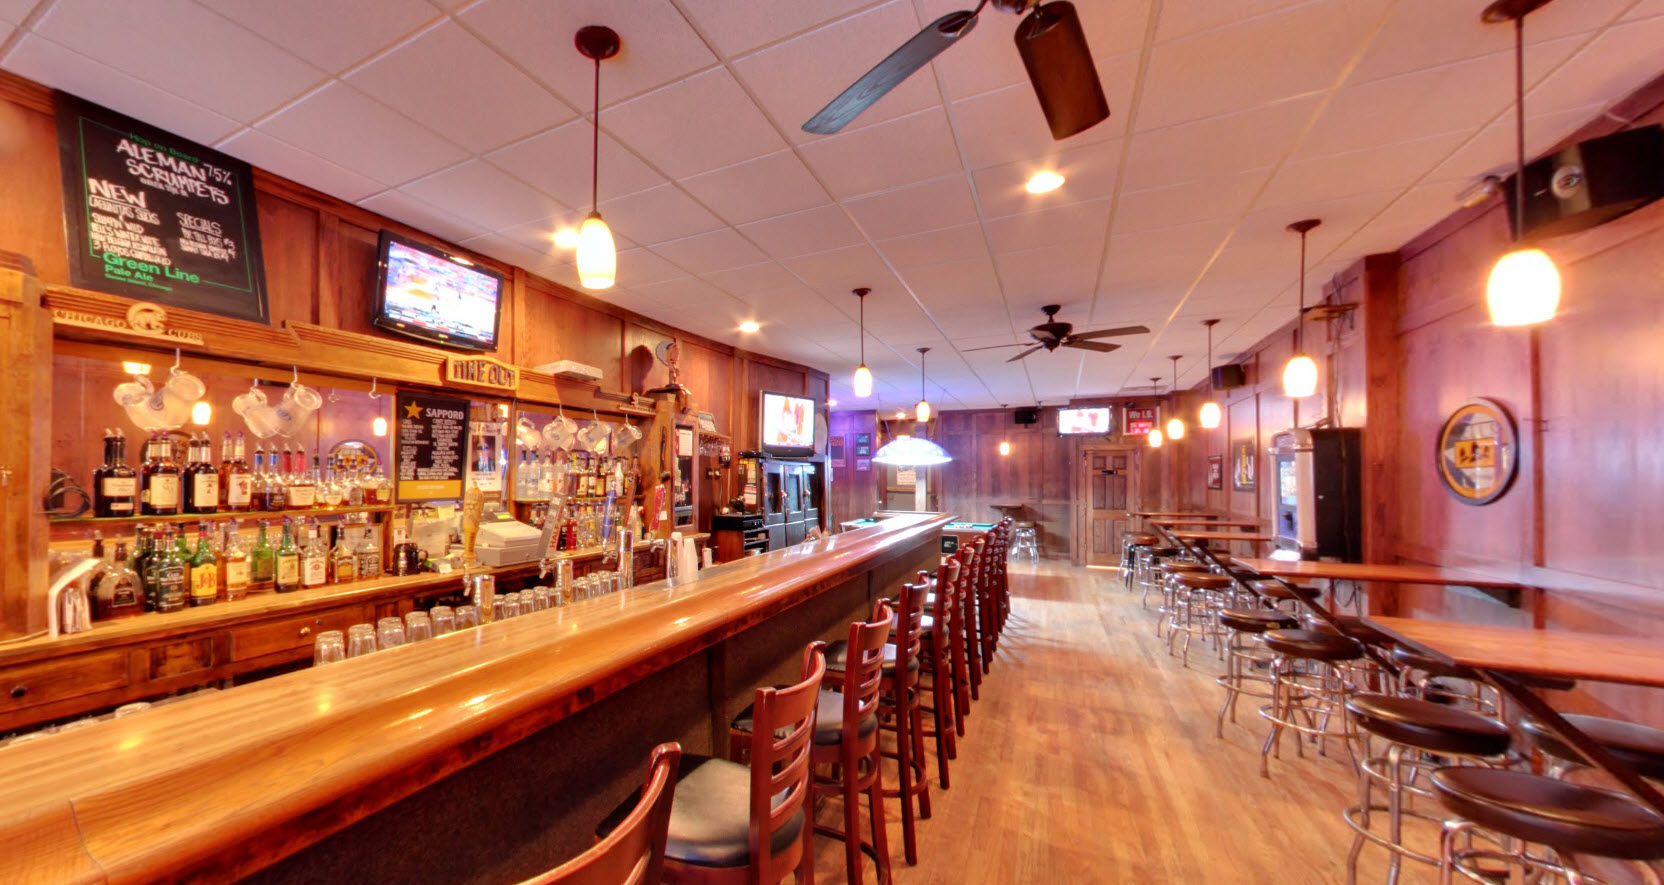 Restaurant Furniture Supply Company Blog Restaurant Furniture Supply Helps Time Out Sports Bar With Its Grand Opening